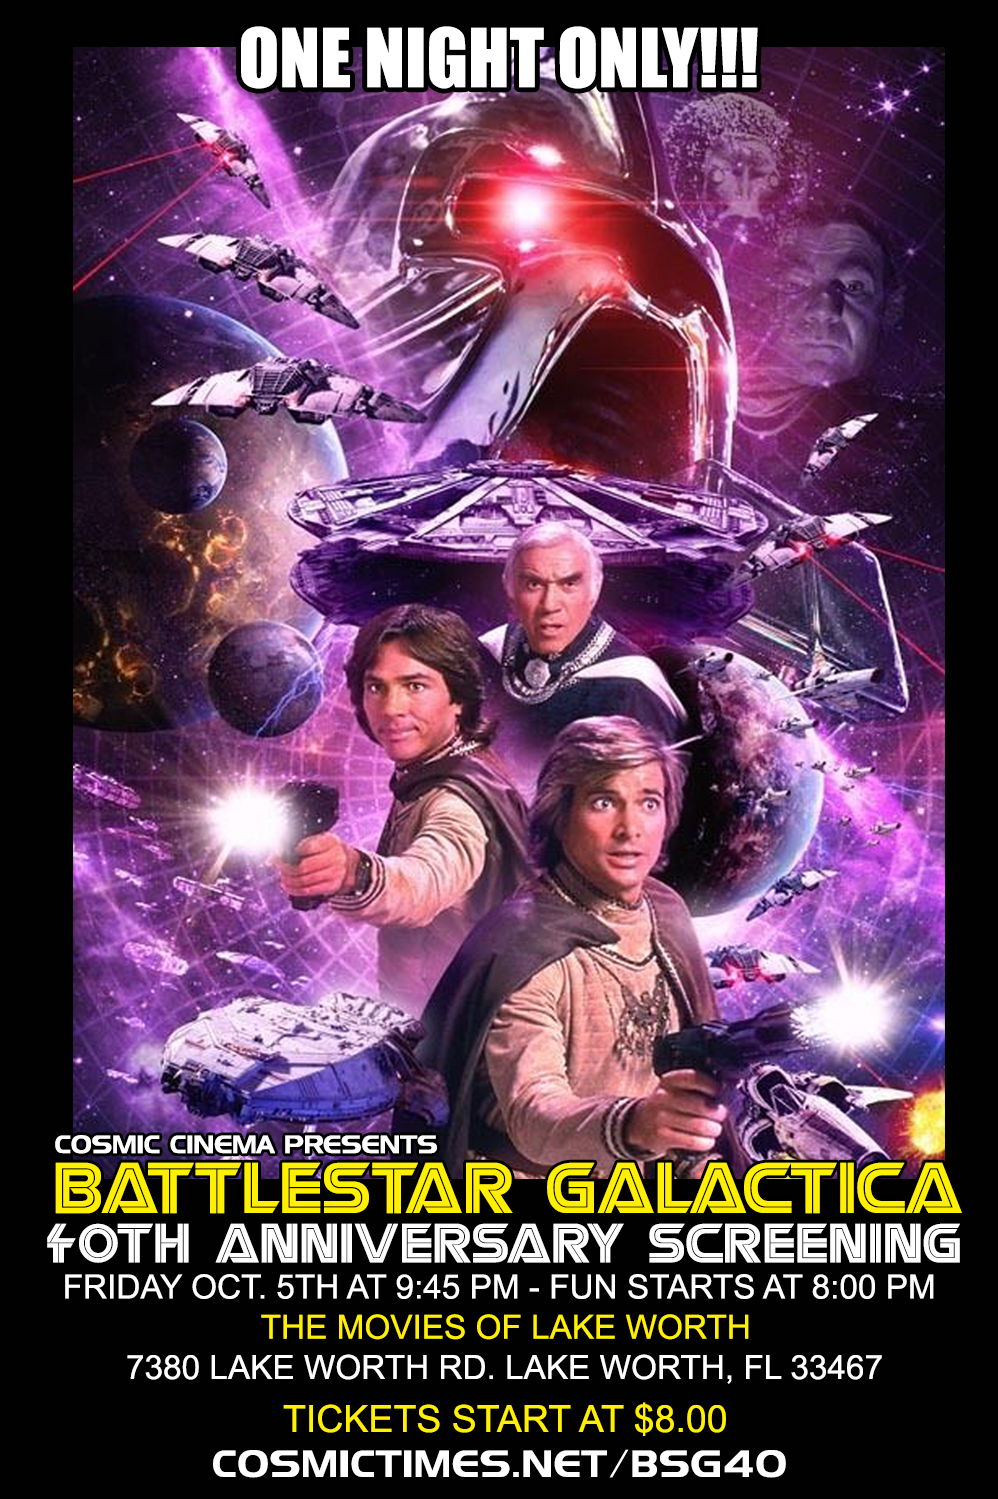 Poster for Battlestar Galactica 40th Anniversary